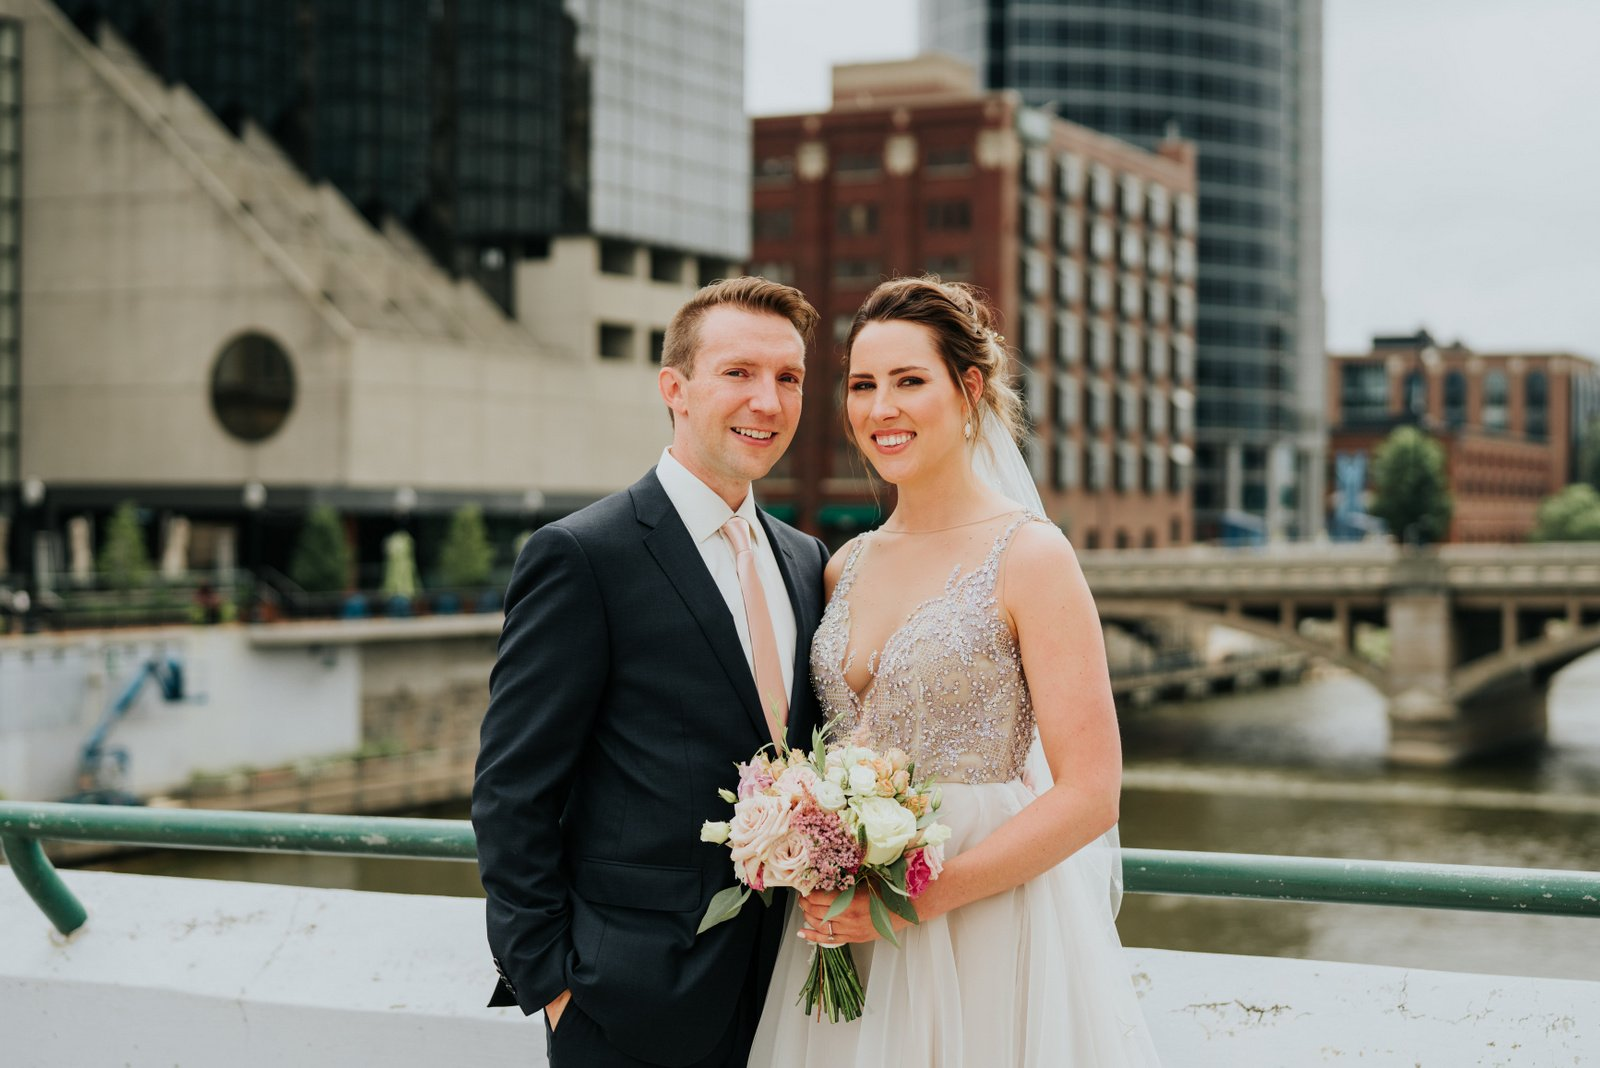 JS Weddings and Events, a Grand Rapids Wedding Planner and Floral Designer. A Moody Summer Romantic Wedding in Downtown Grand Rapids.